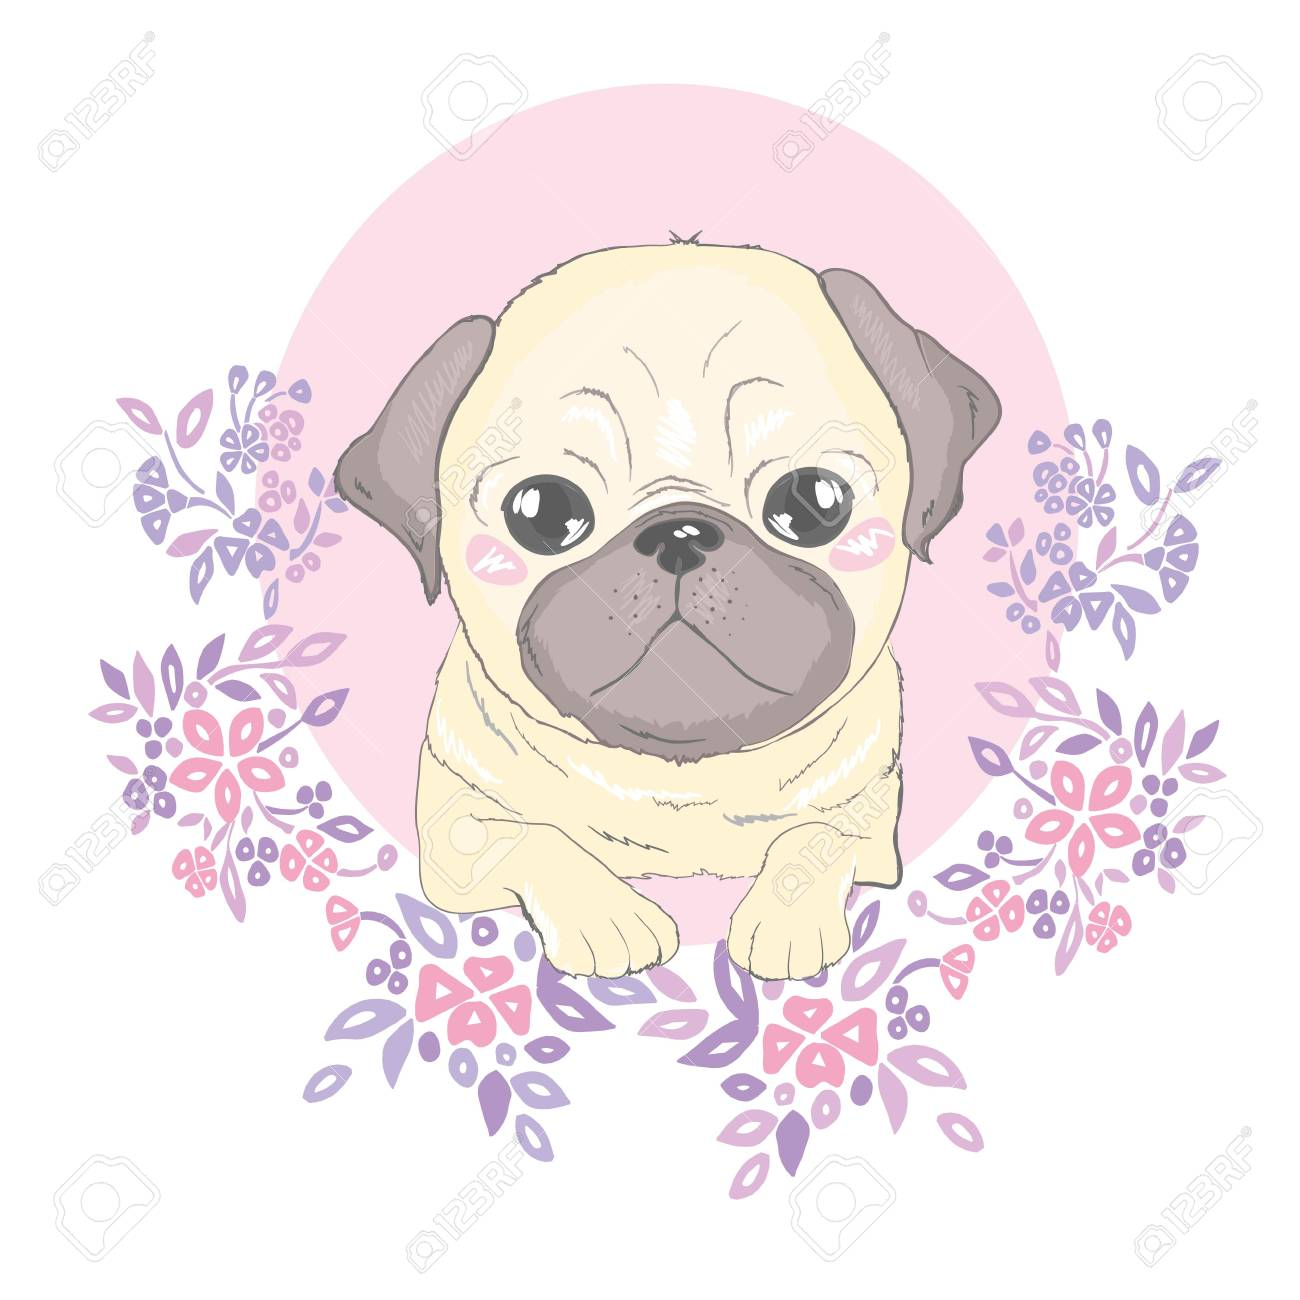 Vector Seamless Pattern With Cute Cartoon Dog Puppies Can Be Royalty Free Cliparts Vectors And Stock Illustration Image 100785825